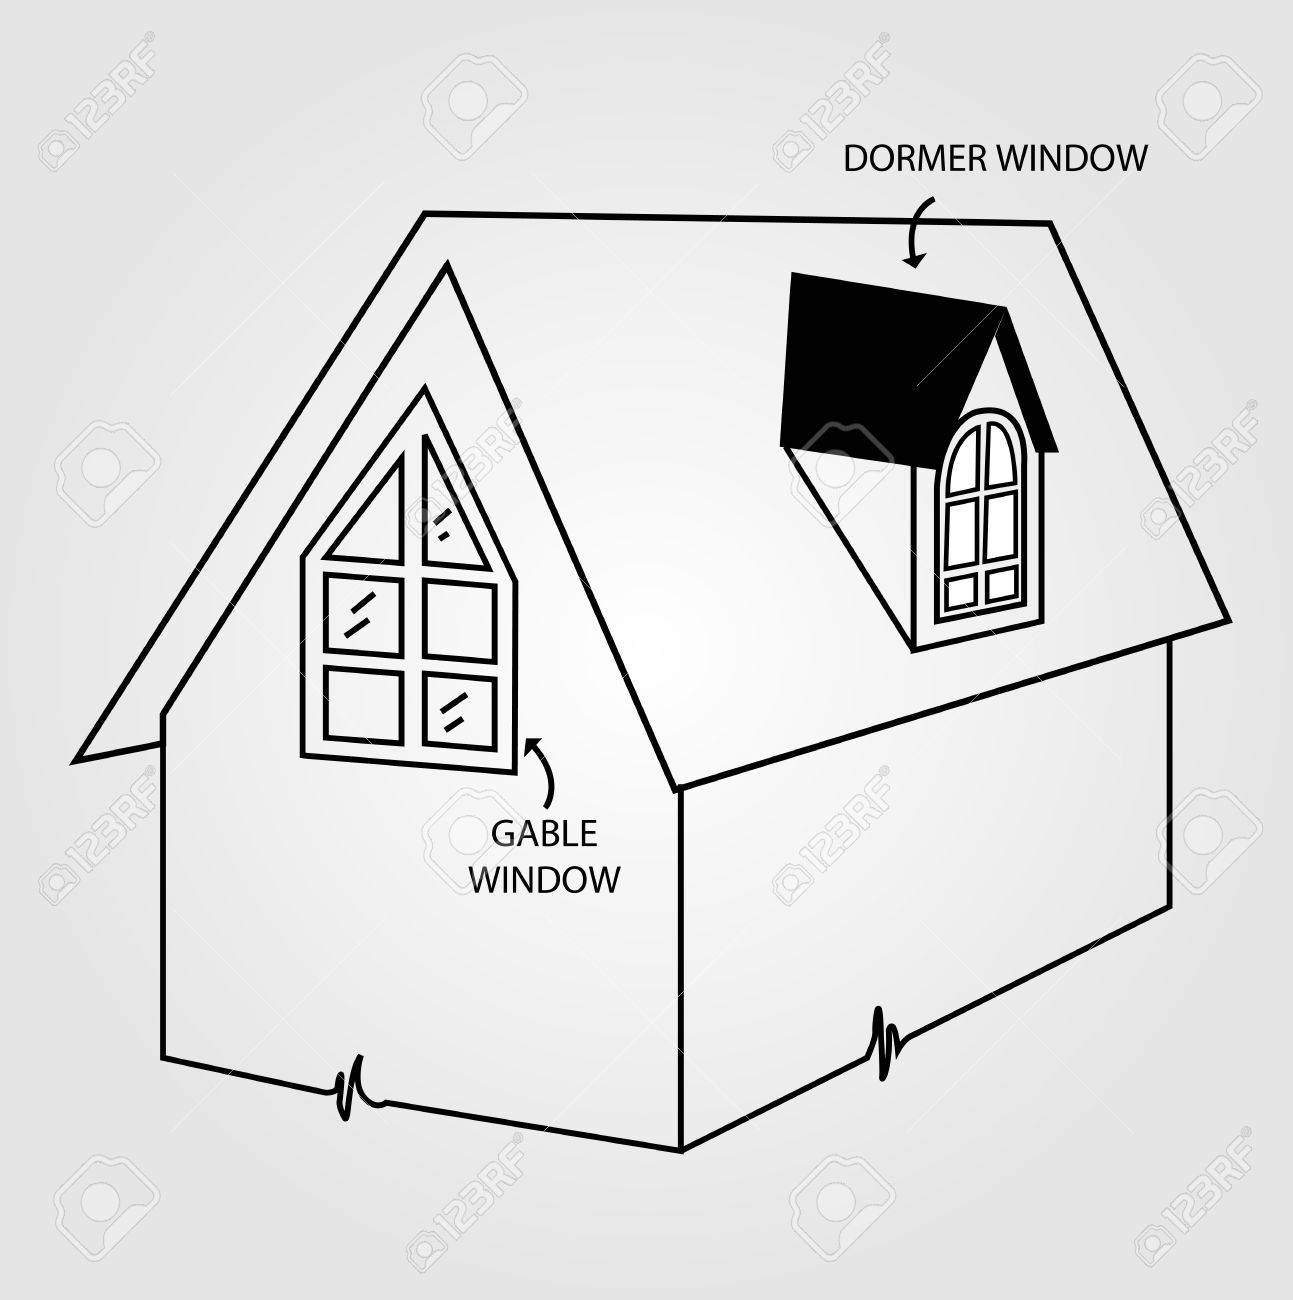 hight resolution of diagram of dormer and gable window stock vector 43044172